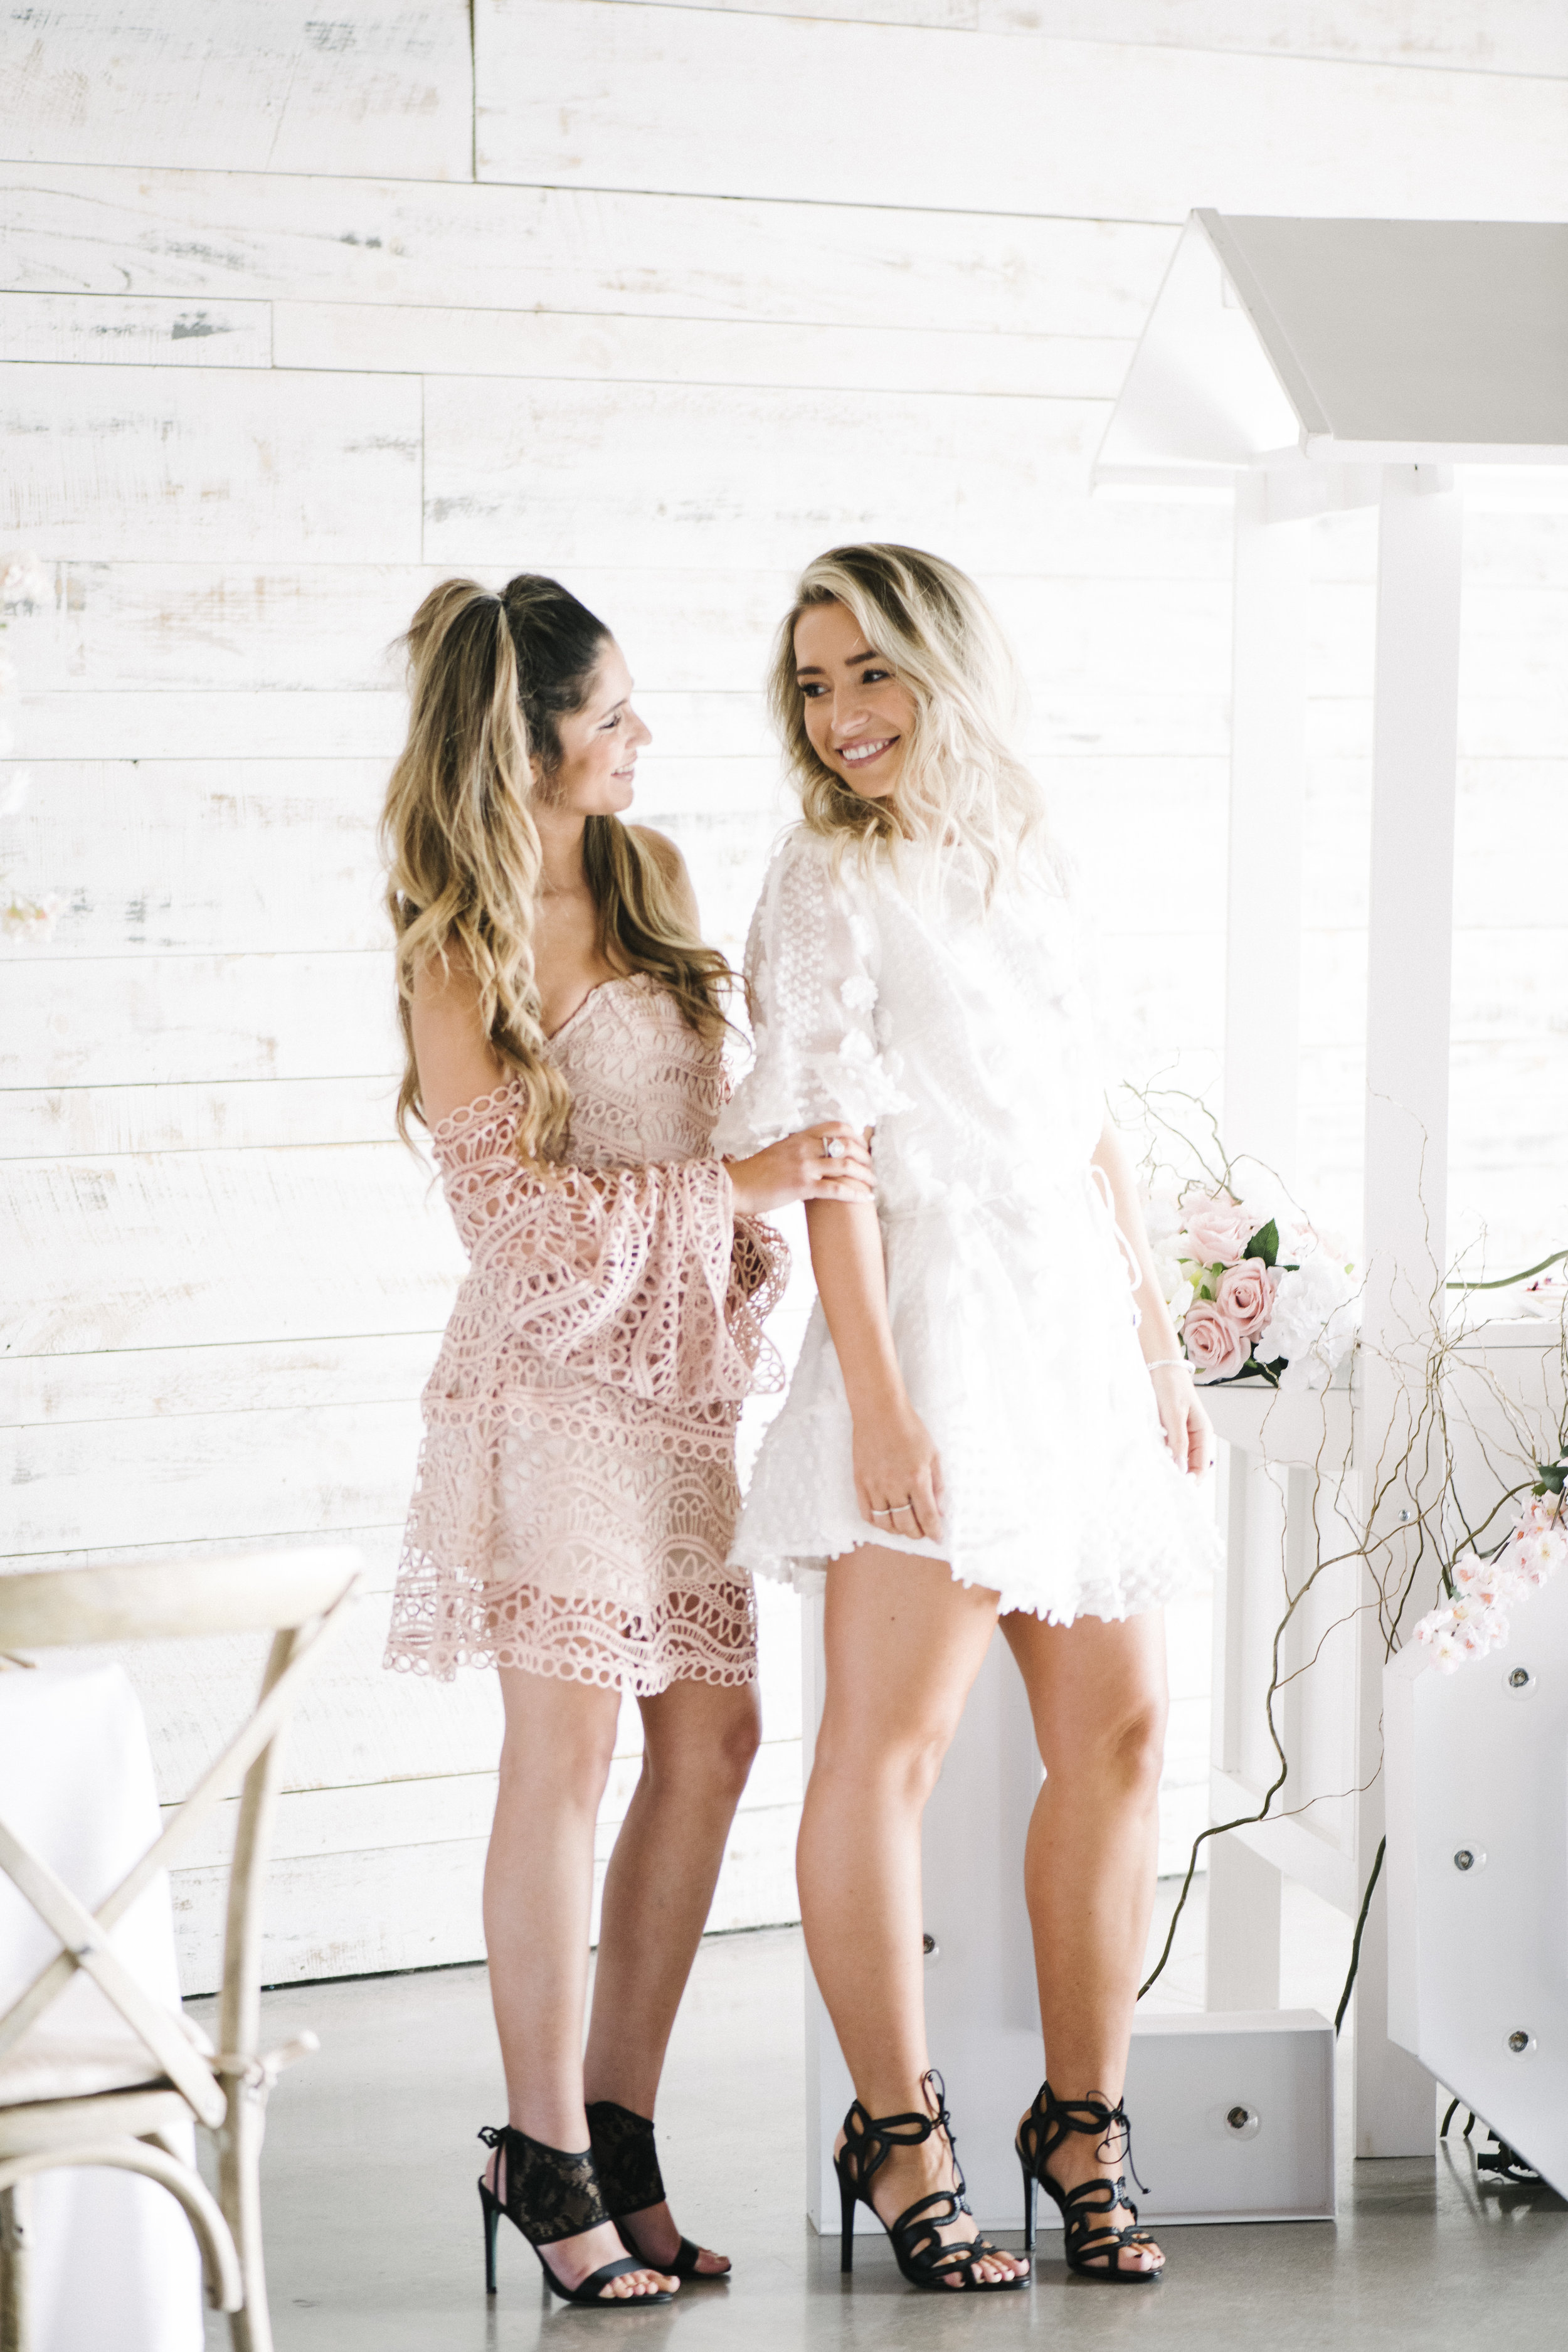 figjam.to     Canada's exclusive online boutique for Australian labels.   Worldwide Shipping Available.  Book a fitting in their Etobicoke studio.  Dresses by     figjam.to    //  Photo by     Lane & Ave Studio